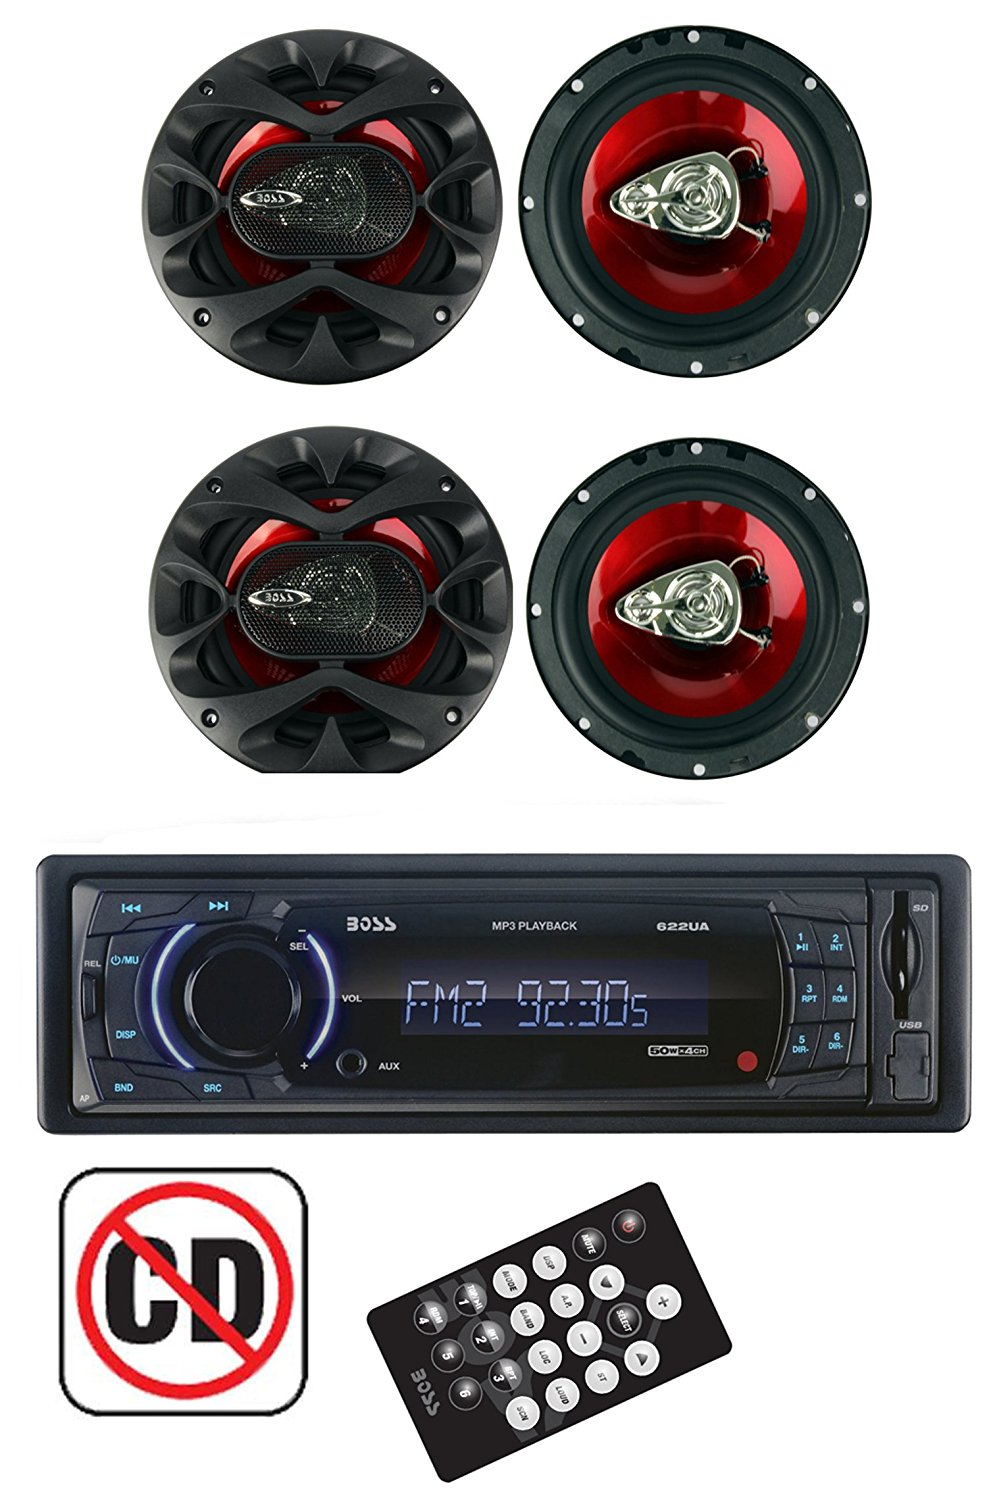 BOSS 622UA Radio Dash Digital Car Stereo Receiver + 4) CH6530 6.5 Inch Speakers